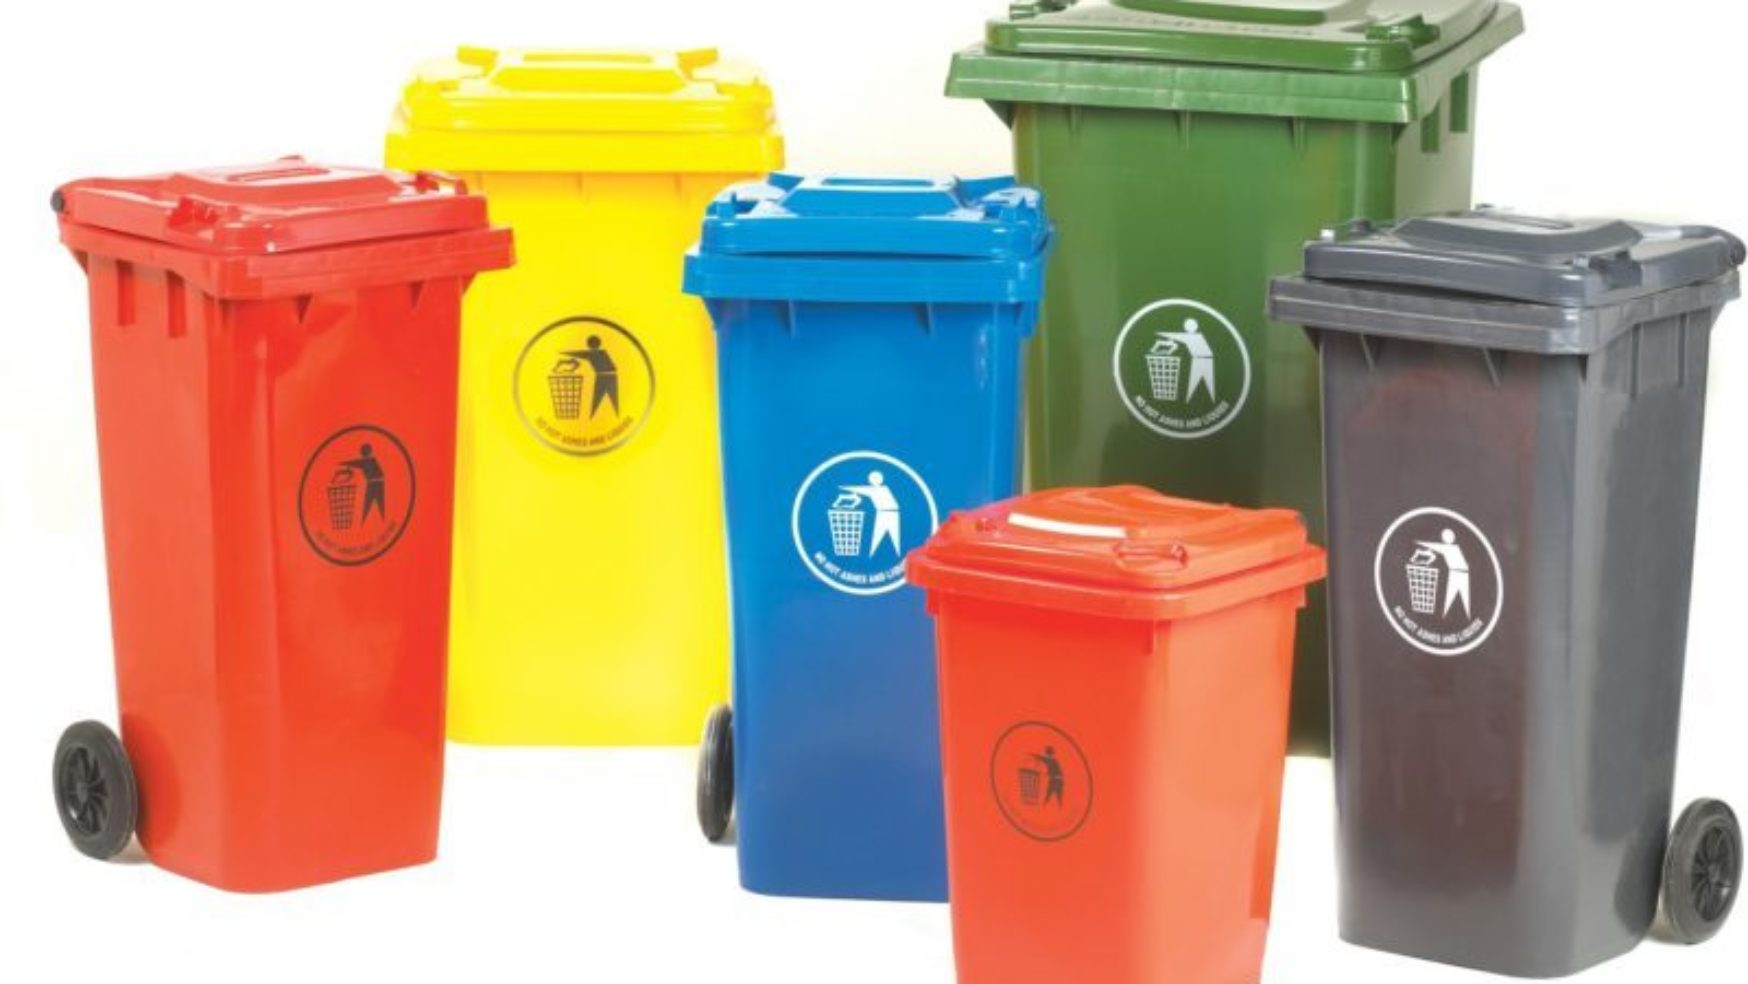 Should you pay for a replacement wheely bin?